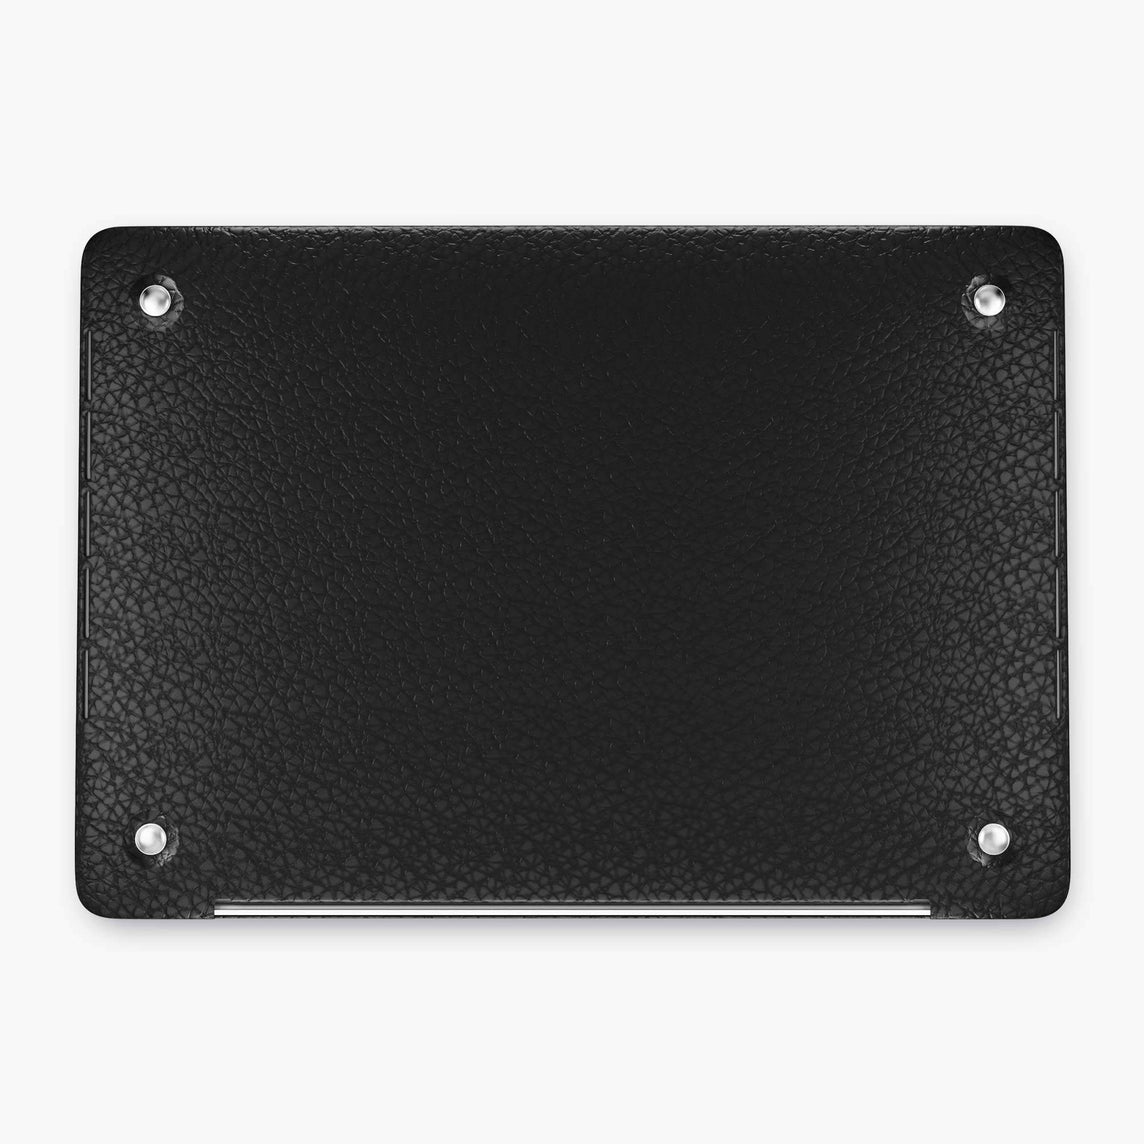 Calfskin Macbook Case Apple Mac Book 15'' Pro | Black - Stainless Steel